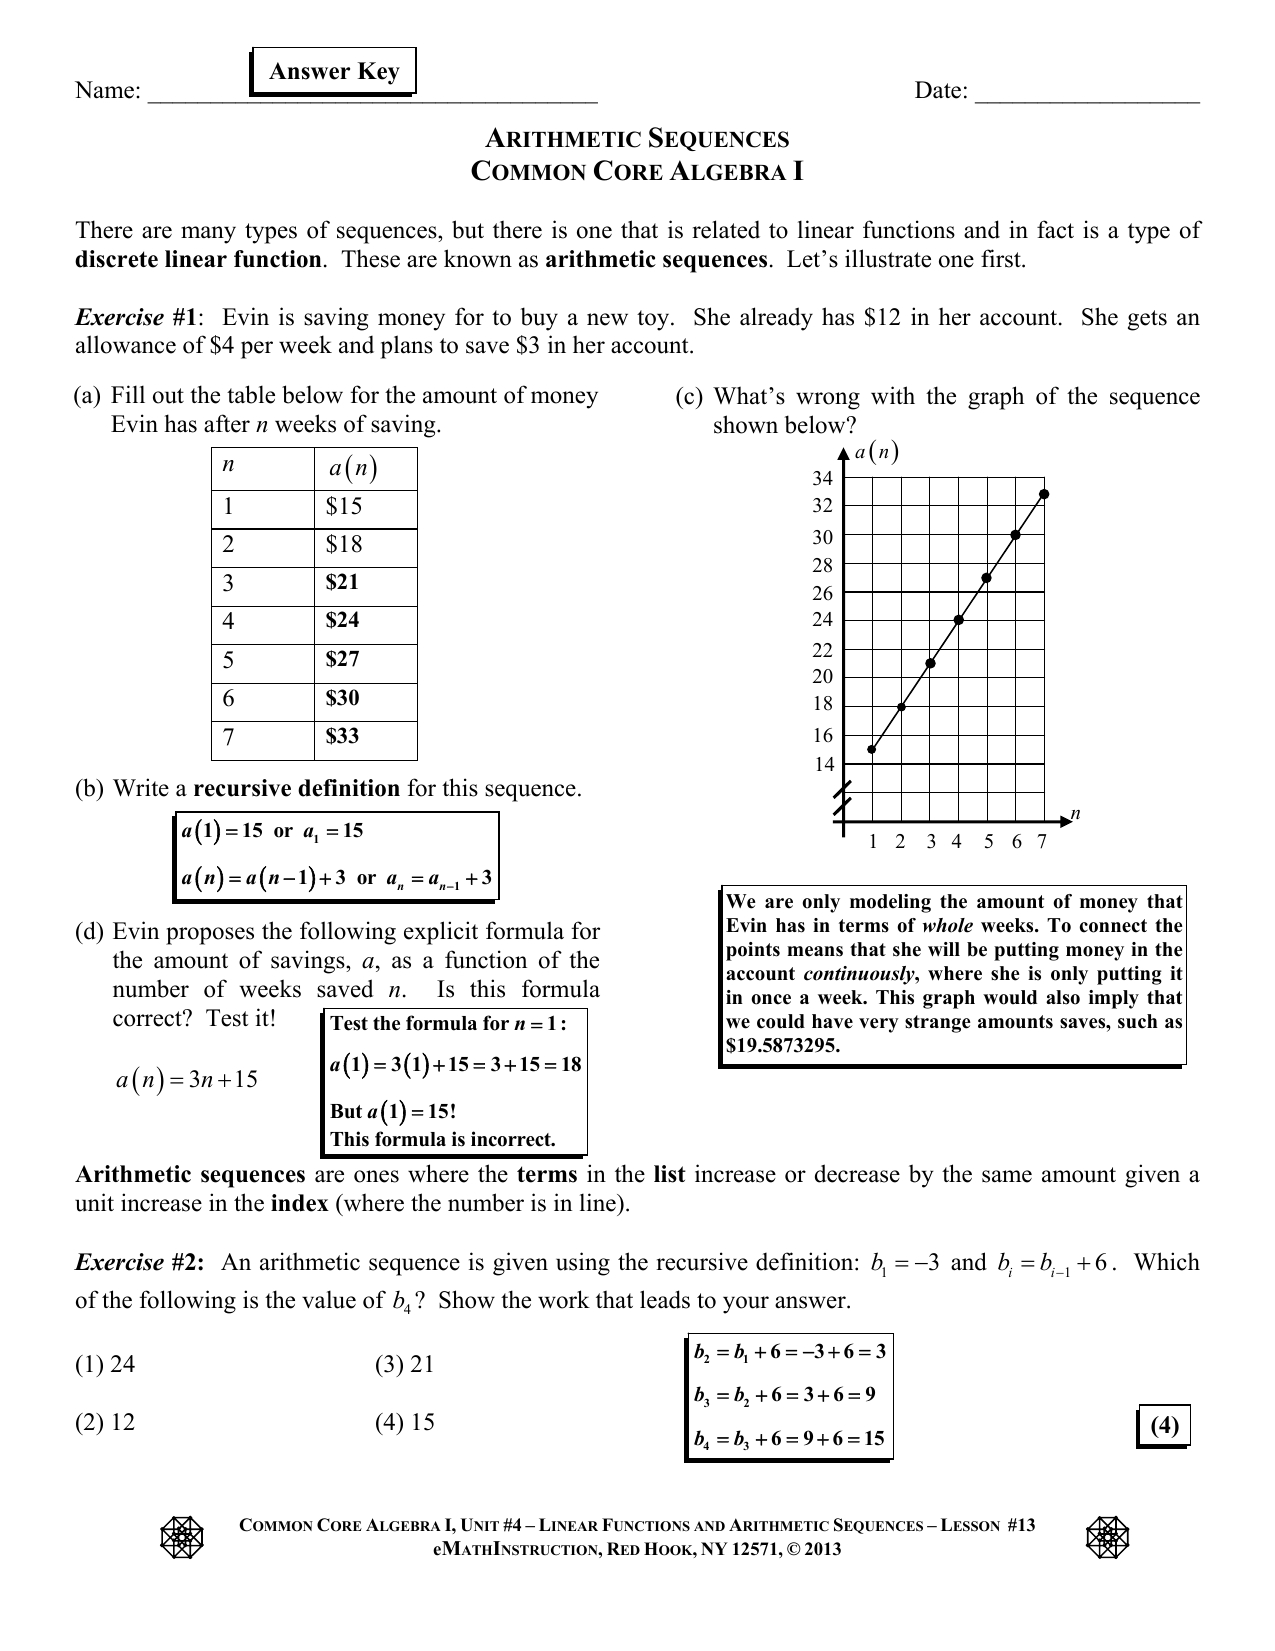 Arithmetic Sequences As Linear Functions Worksheet Db Excel